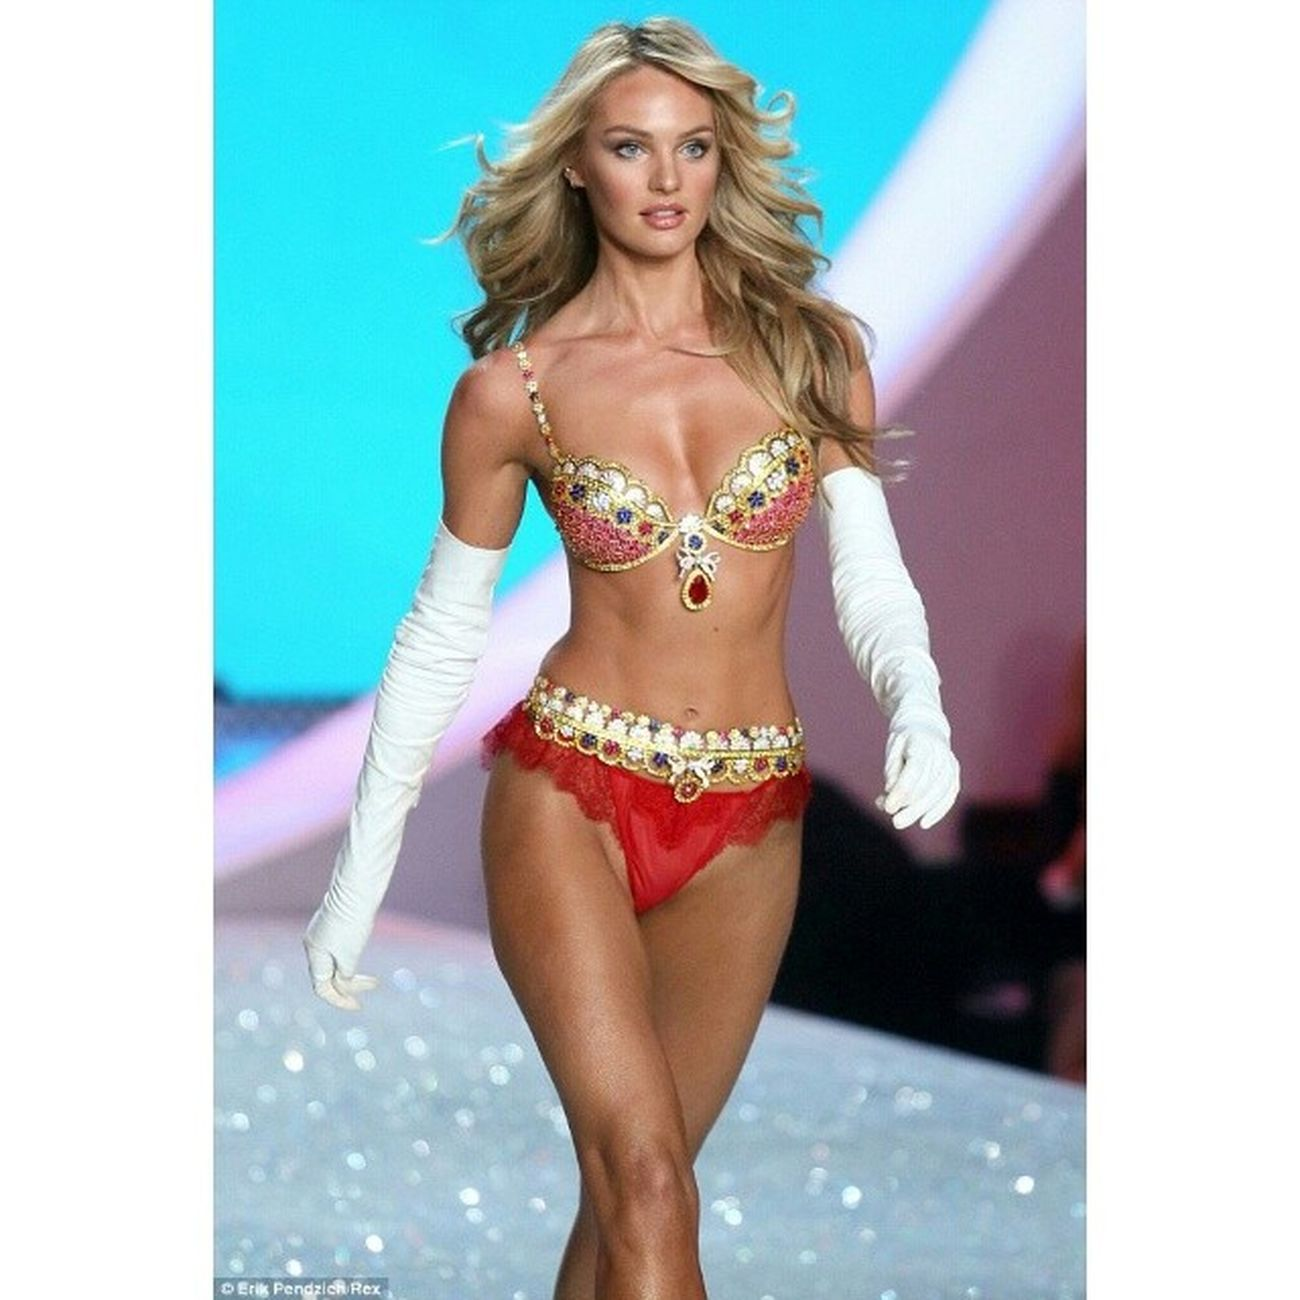 @angelcandices opens the runway with Vsfantasybra worth $10 million in Victoria's Secret Fashion Show 2013 VSfashionshow2013 .